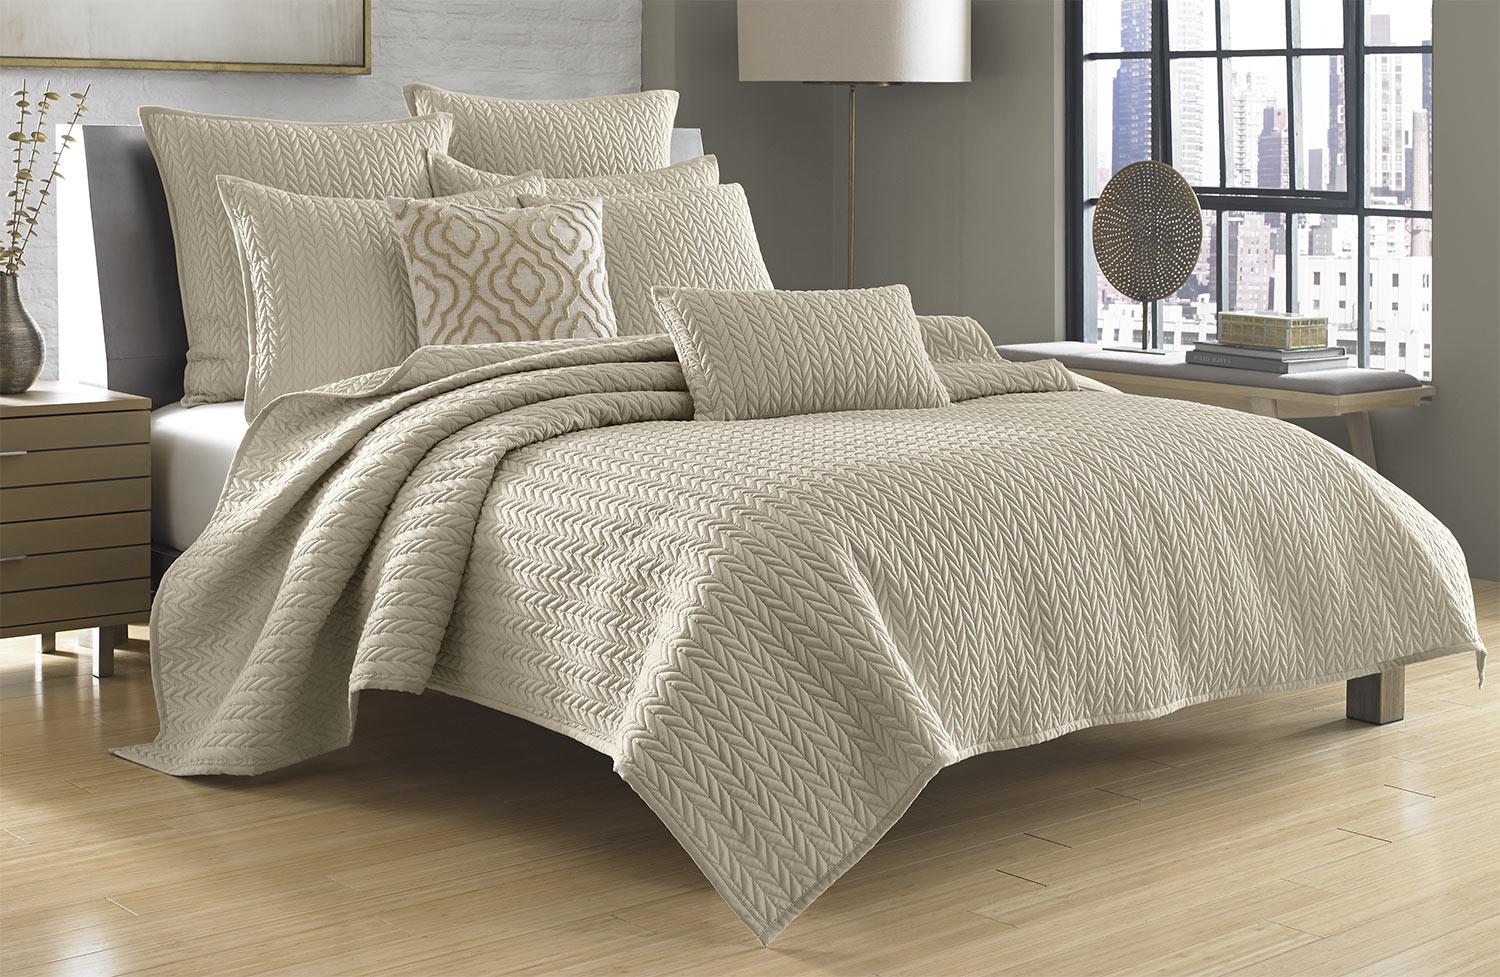 camden beige by j queen new york - J Queen New York Bedding